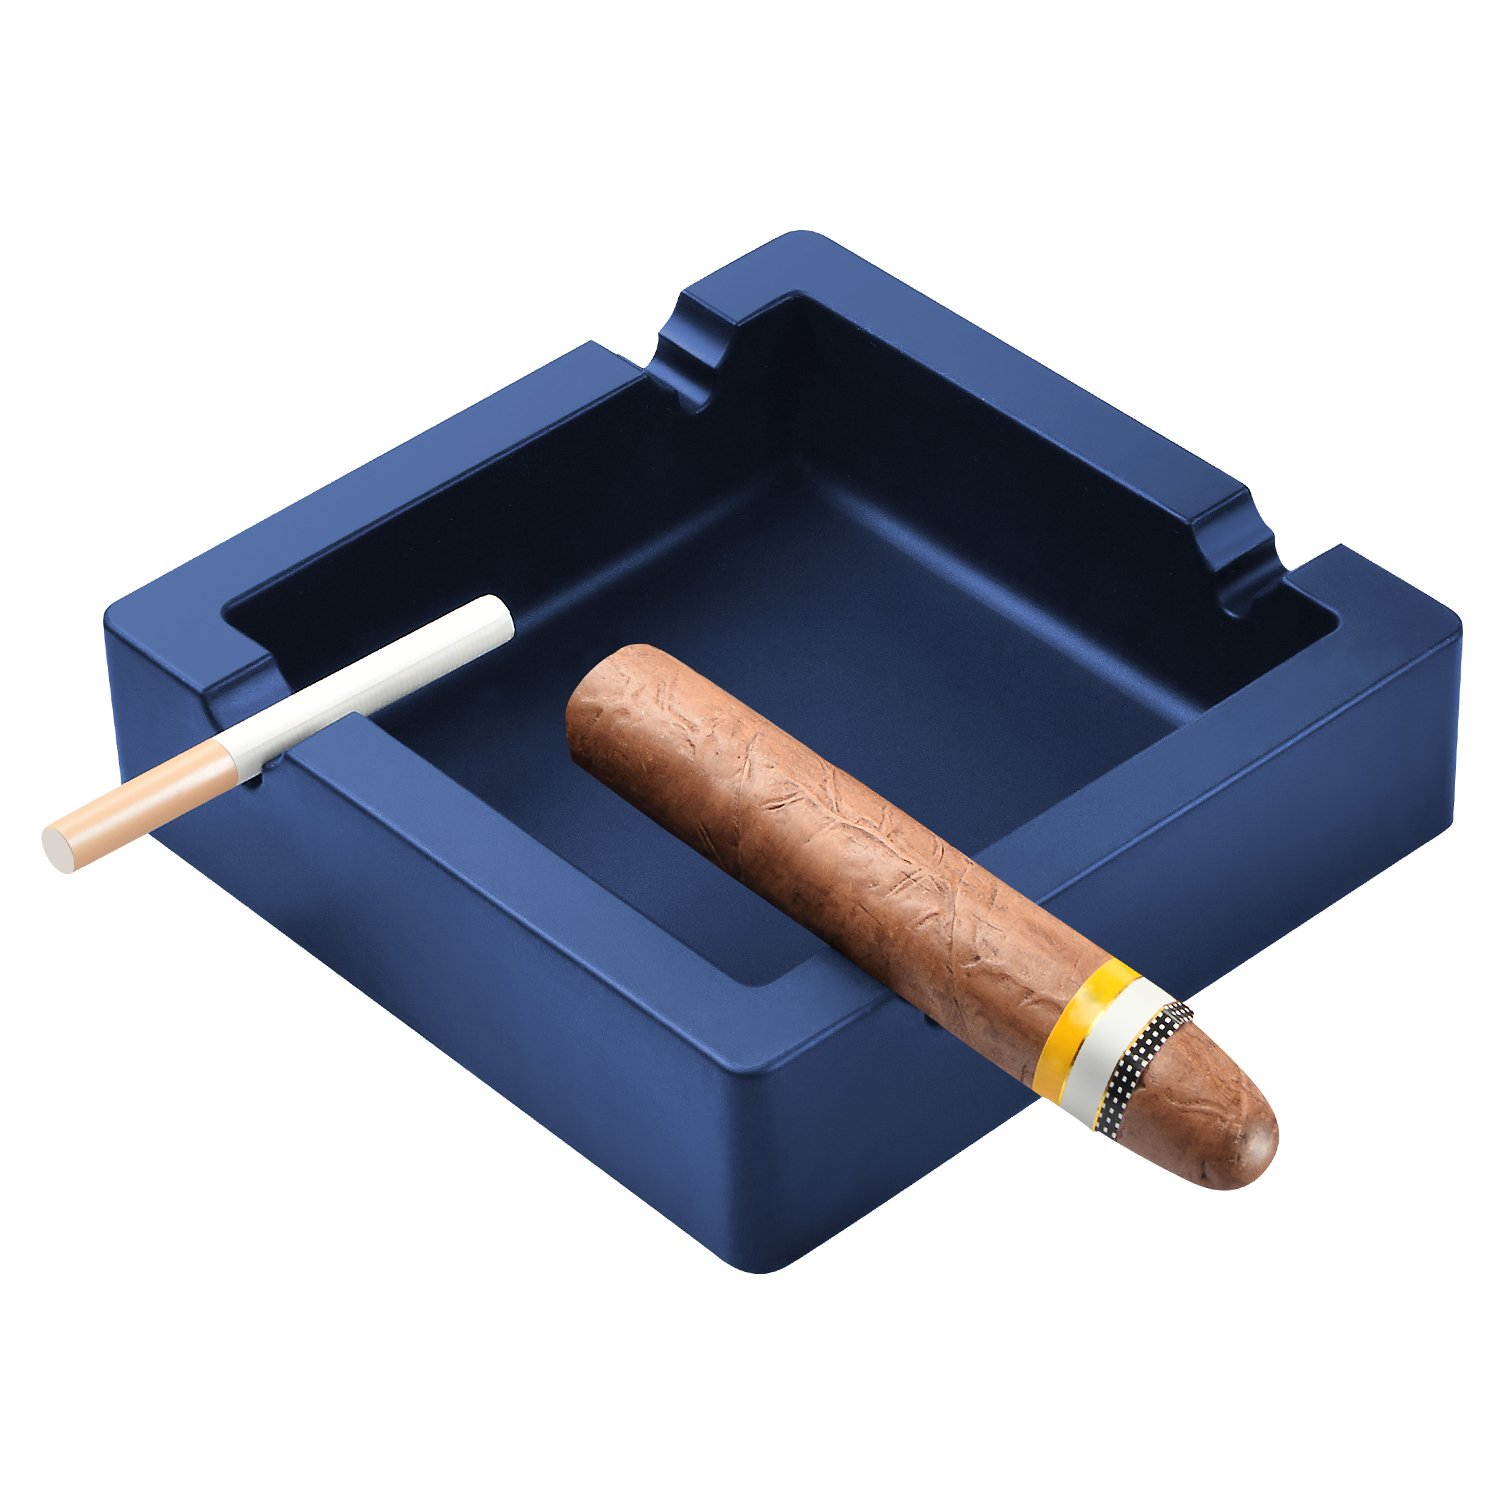 OILP Large Cigar Ashtrays for Men,Big Ashtrays for Cigarettes,4 Dual-use Rest Unbreakable Silicone Ashtrays for Outdoor Indoor Home Decor Modern Ashtray (Navy Blue)